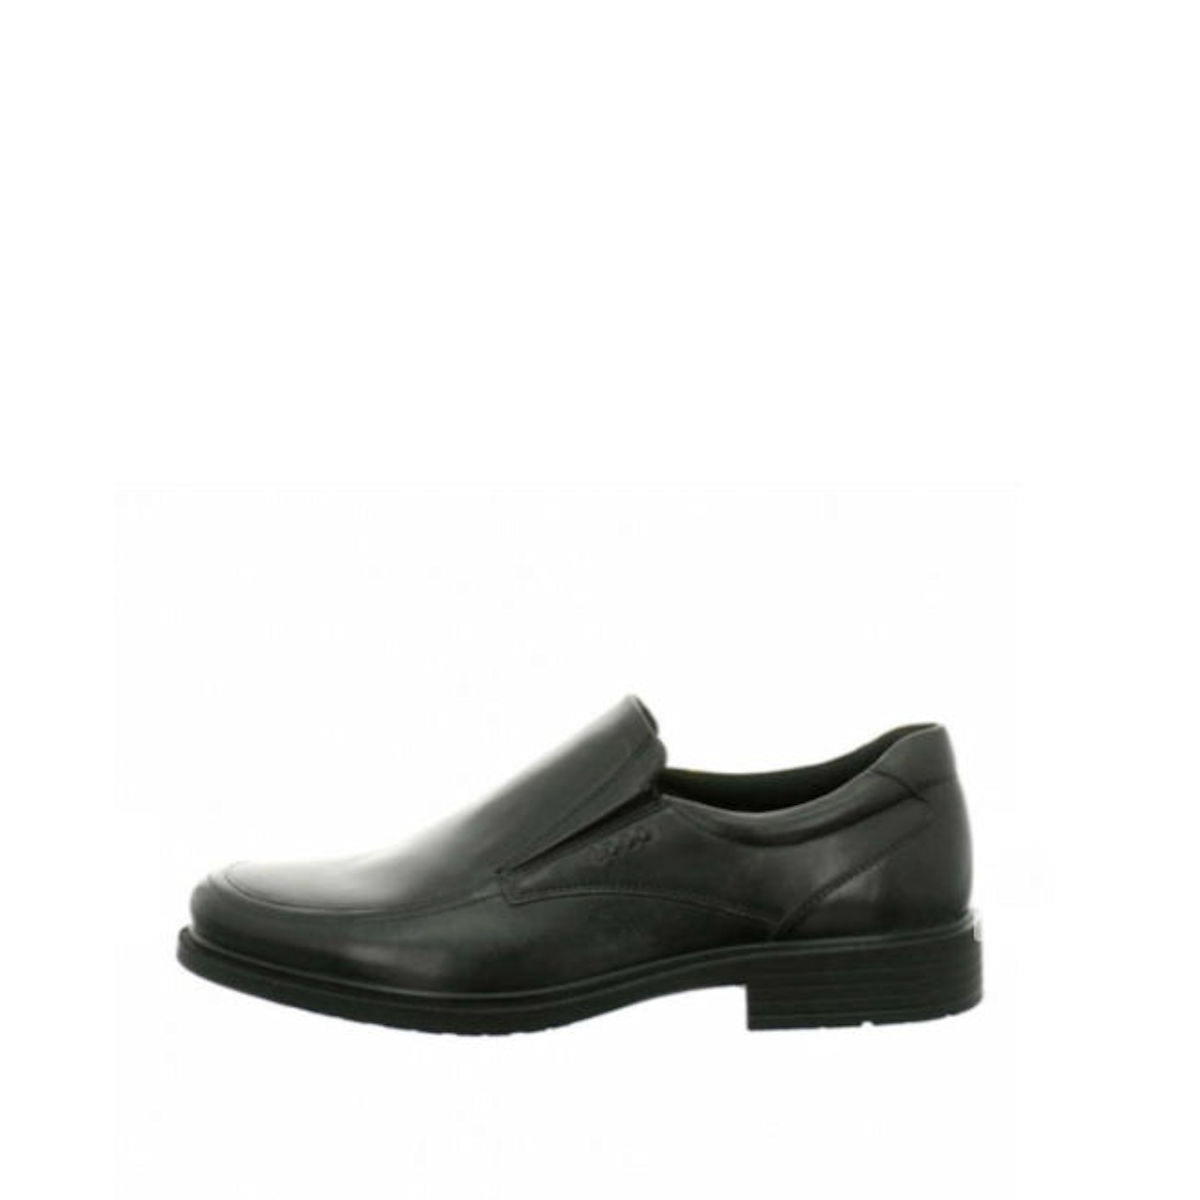 ECCO 610614 - Mens Classic Slip-On Black Inglewood Shoe